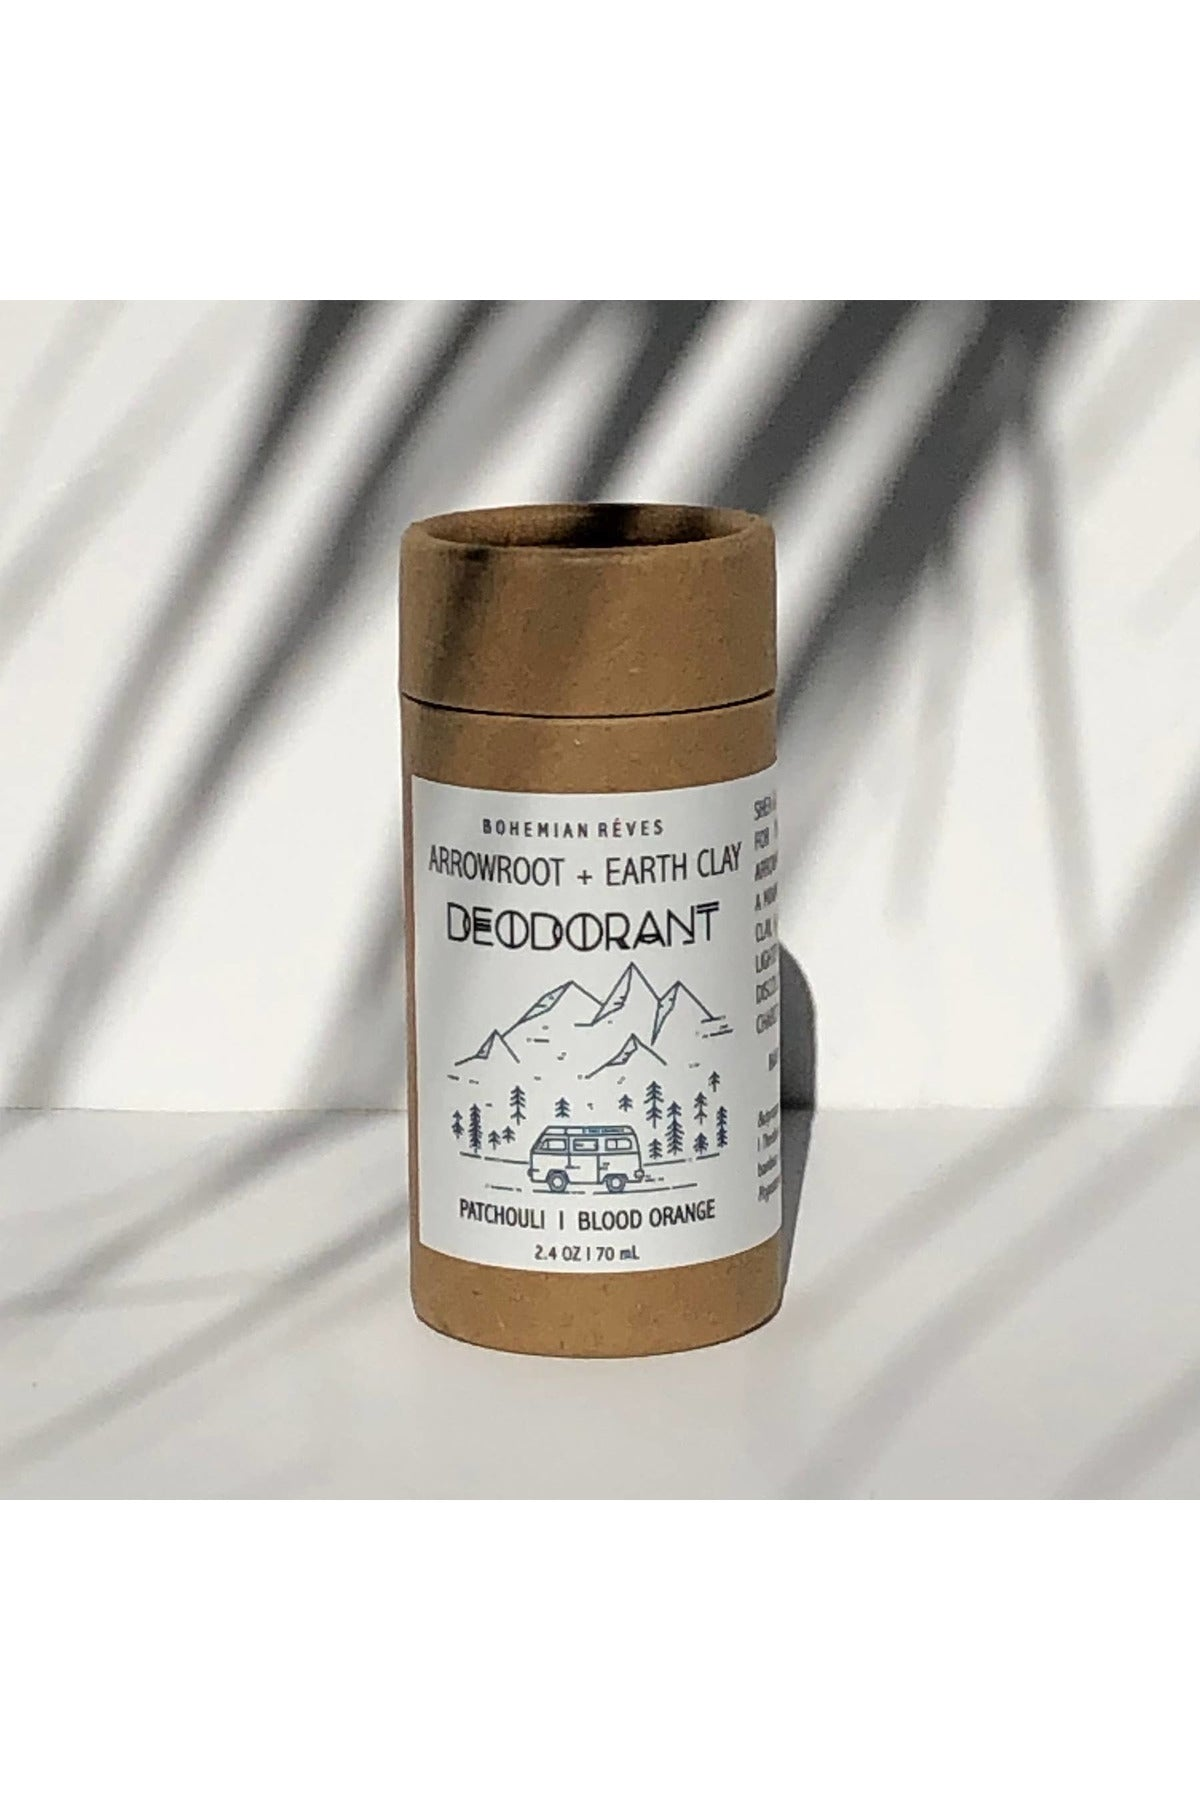 Bohemian Rêves - Arrowroot and Earth Clay Deodorant